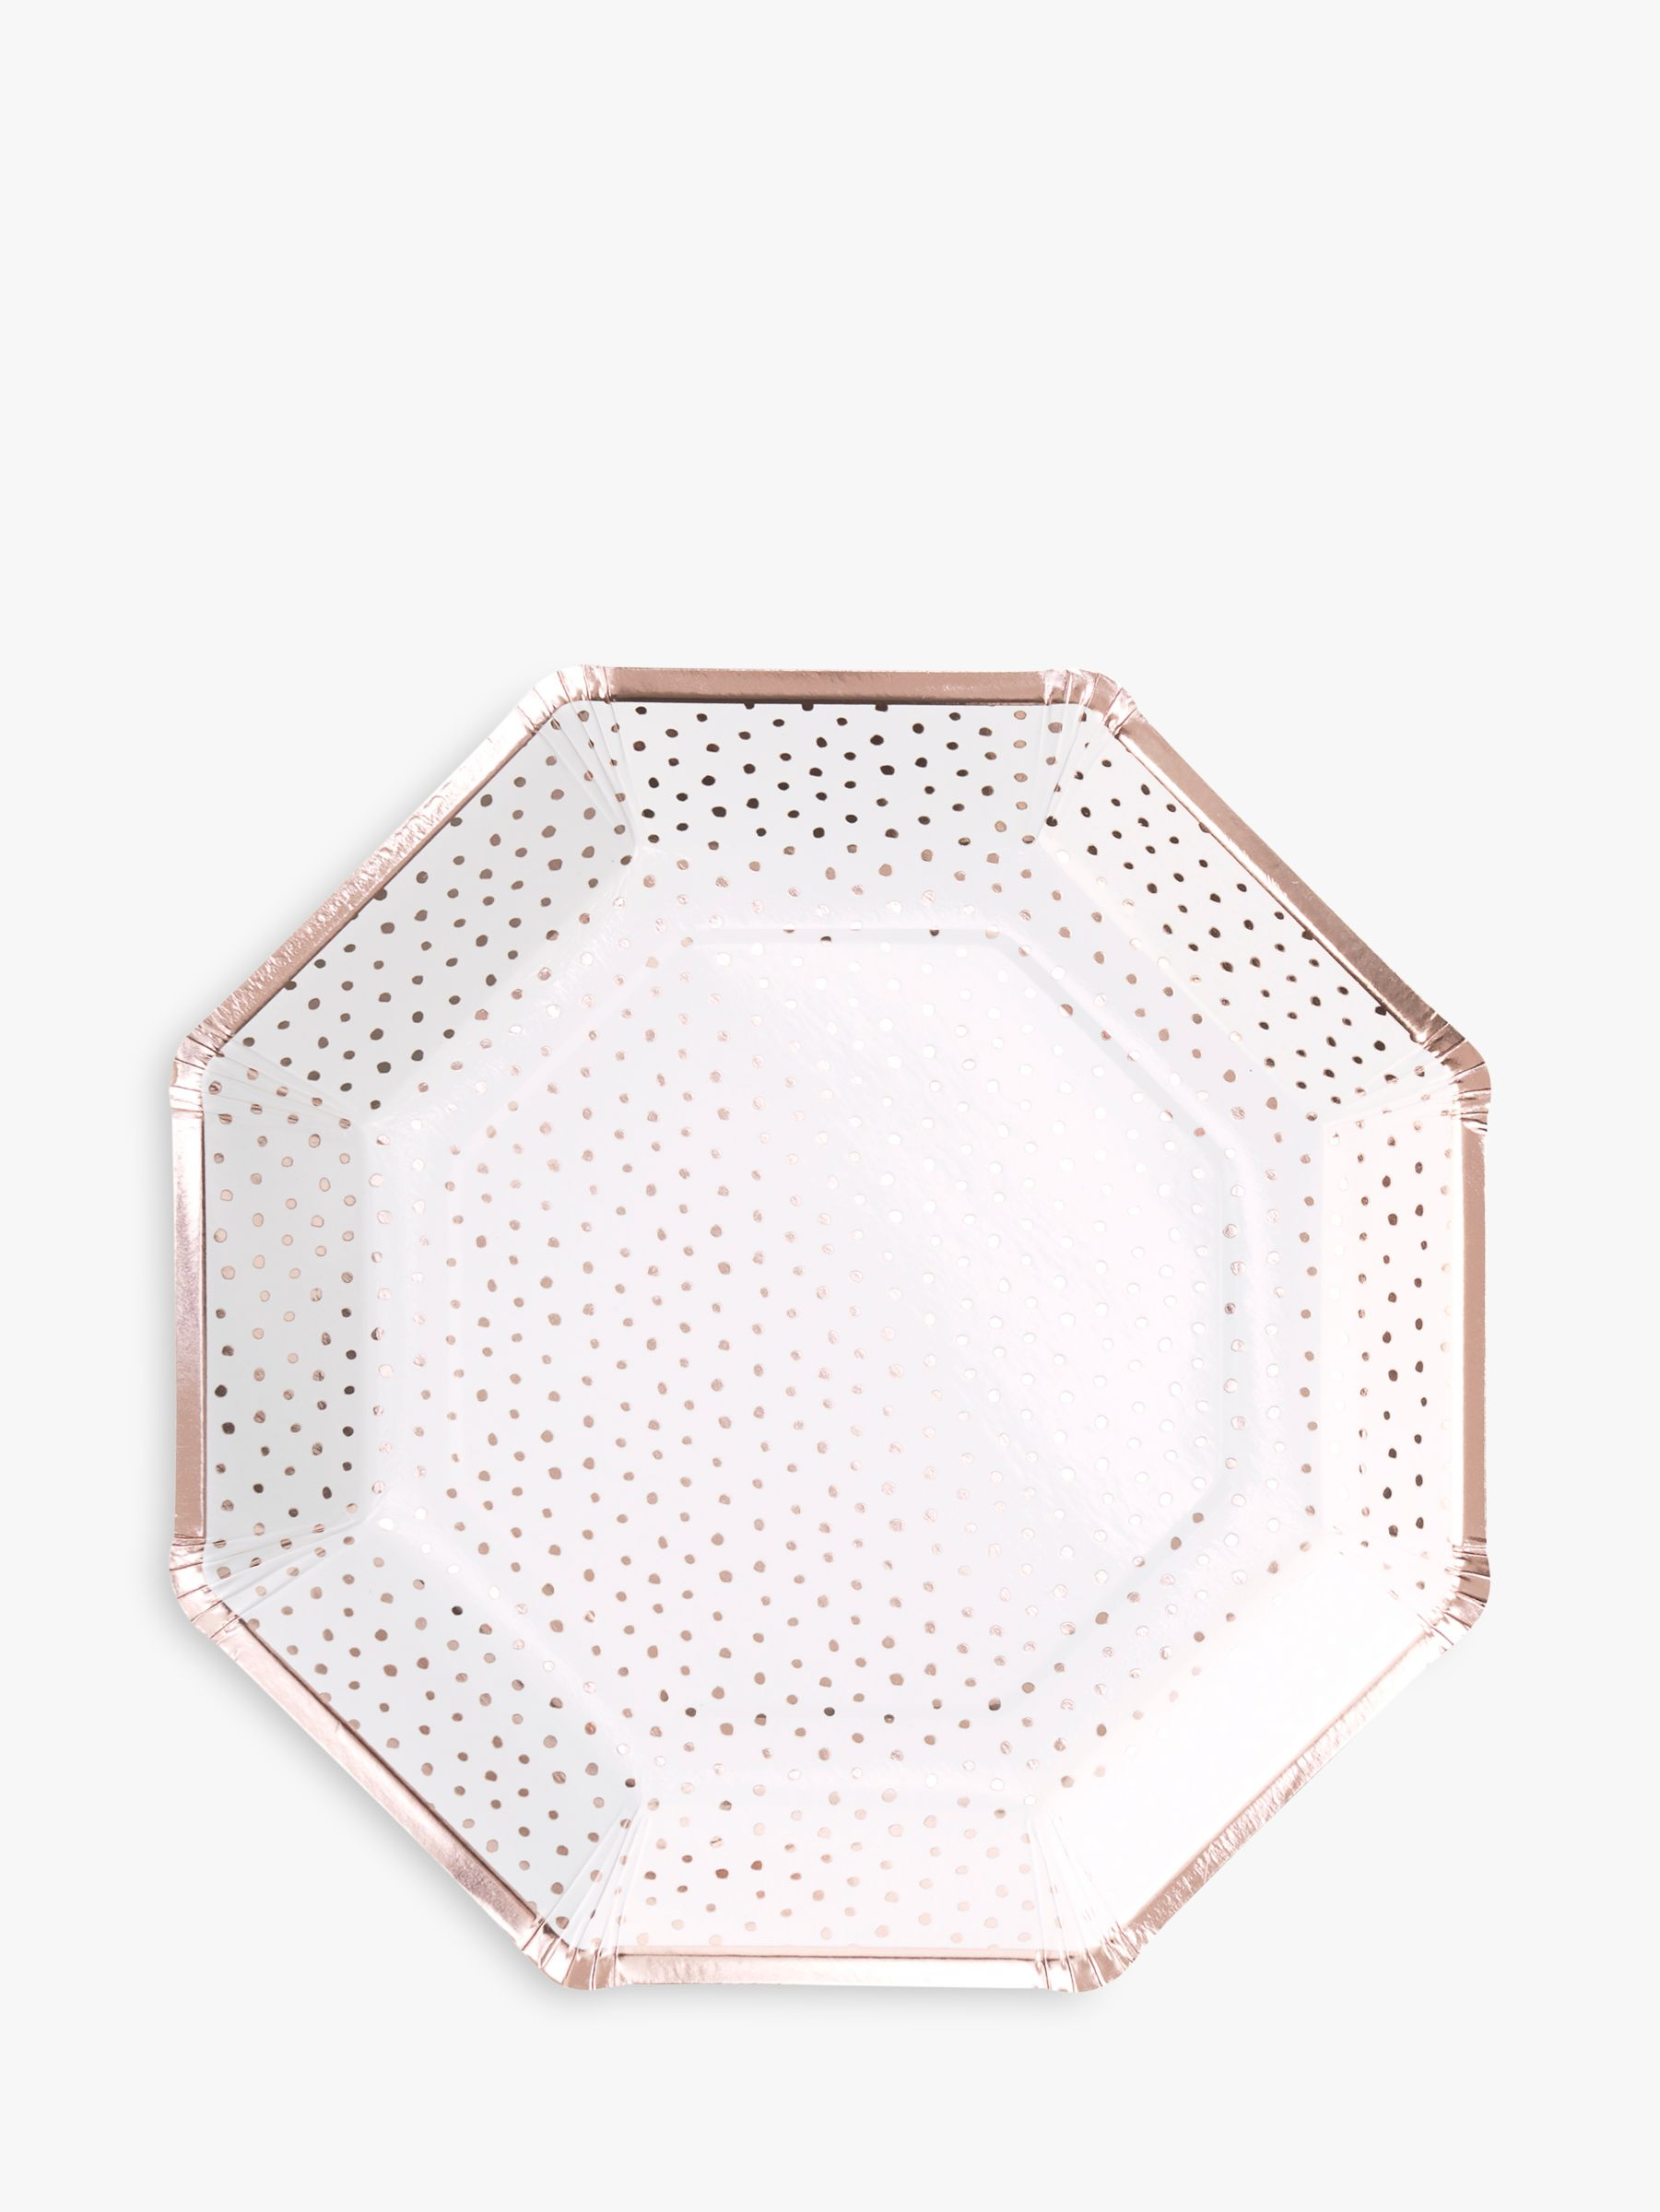 Ginger Ray Ginger Ray Spotty Plates, Pack of 8